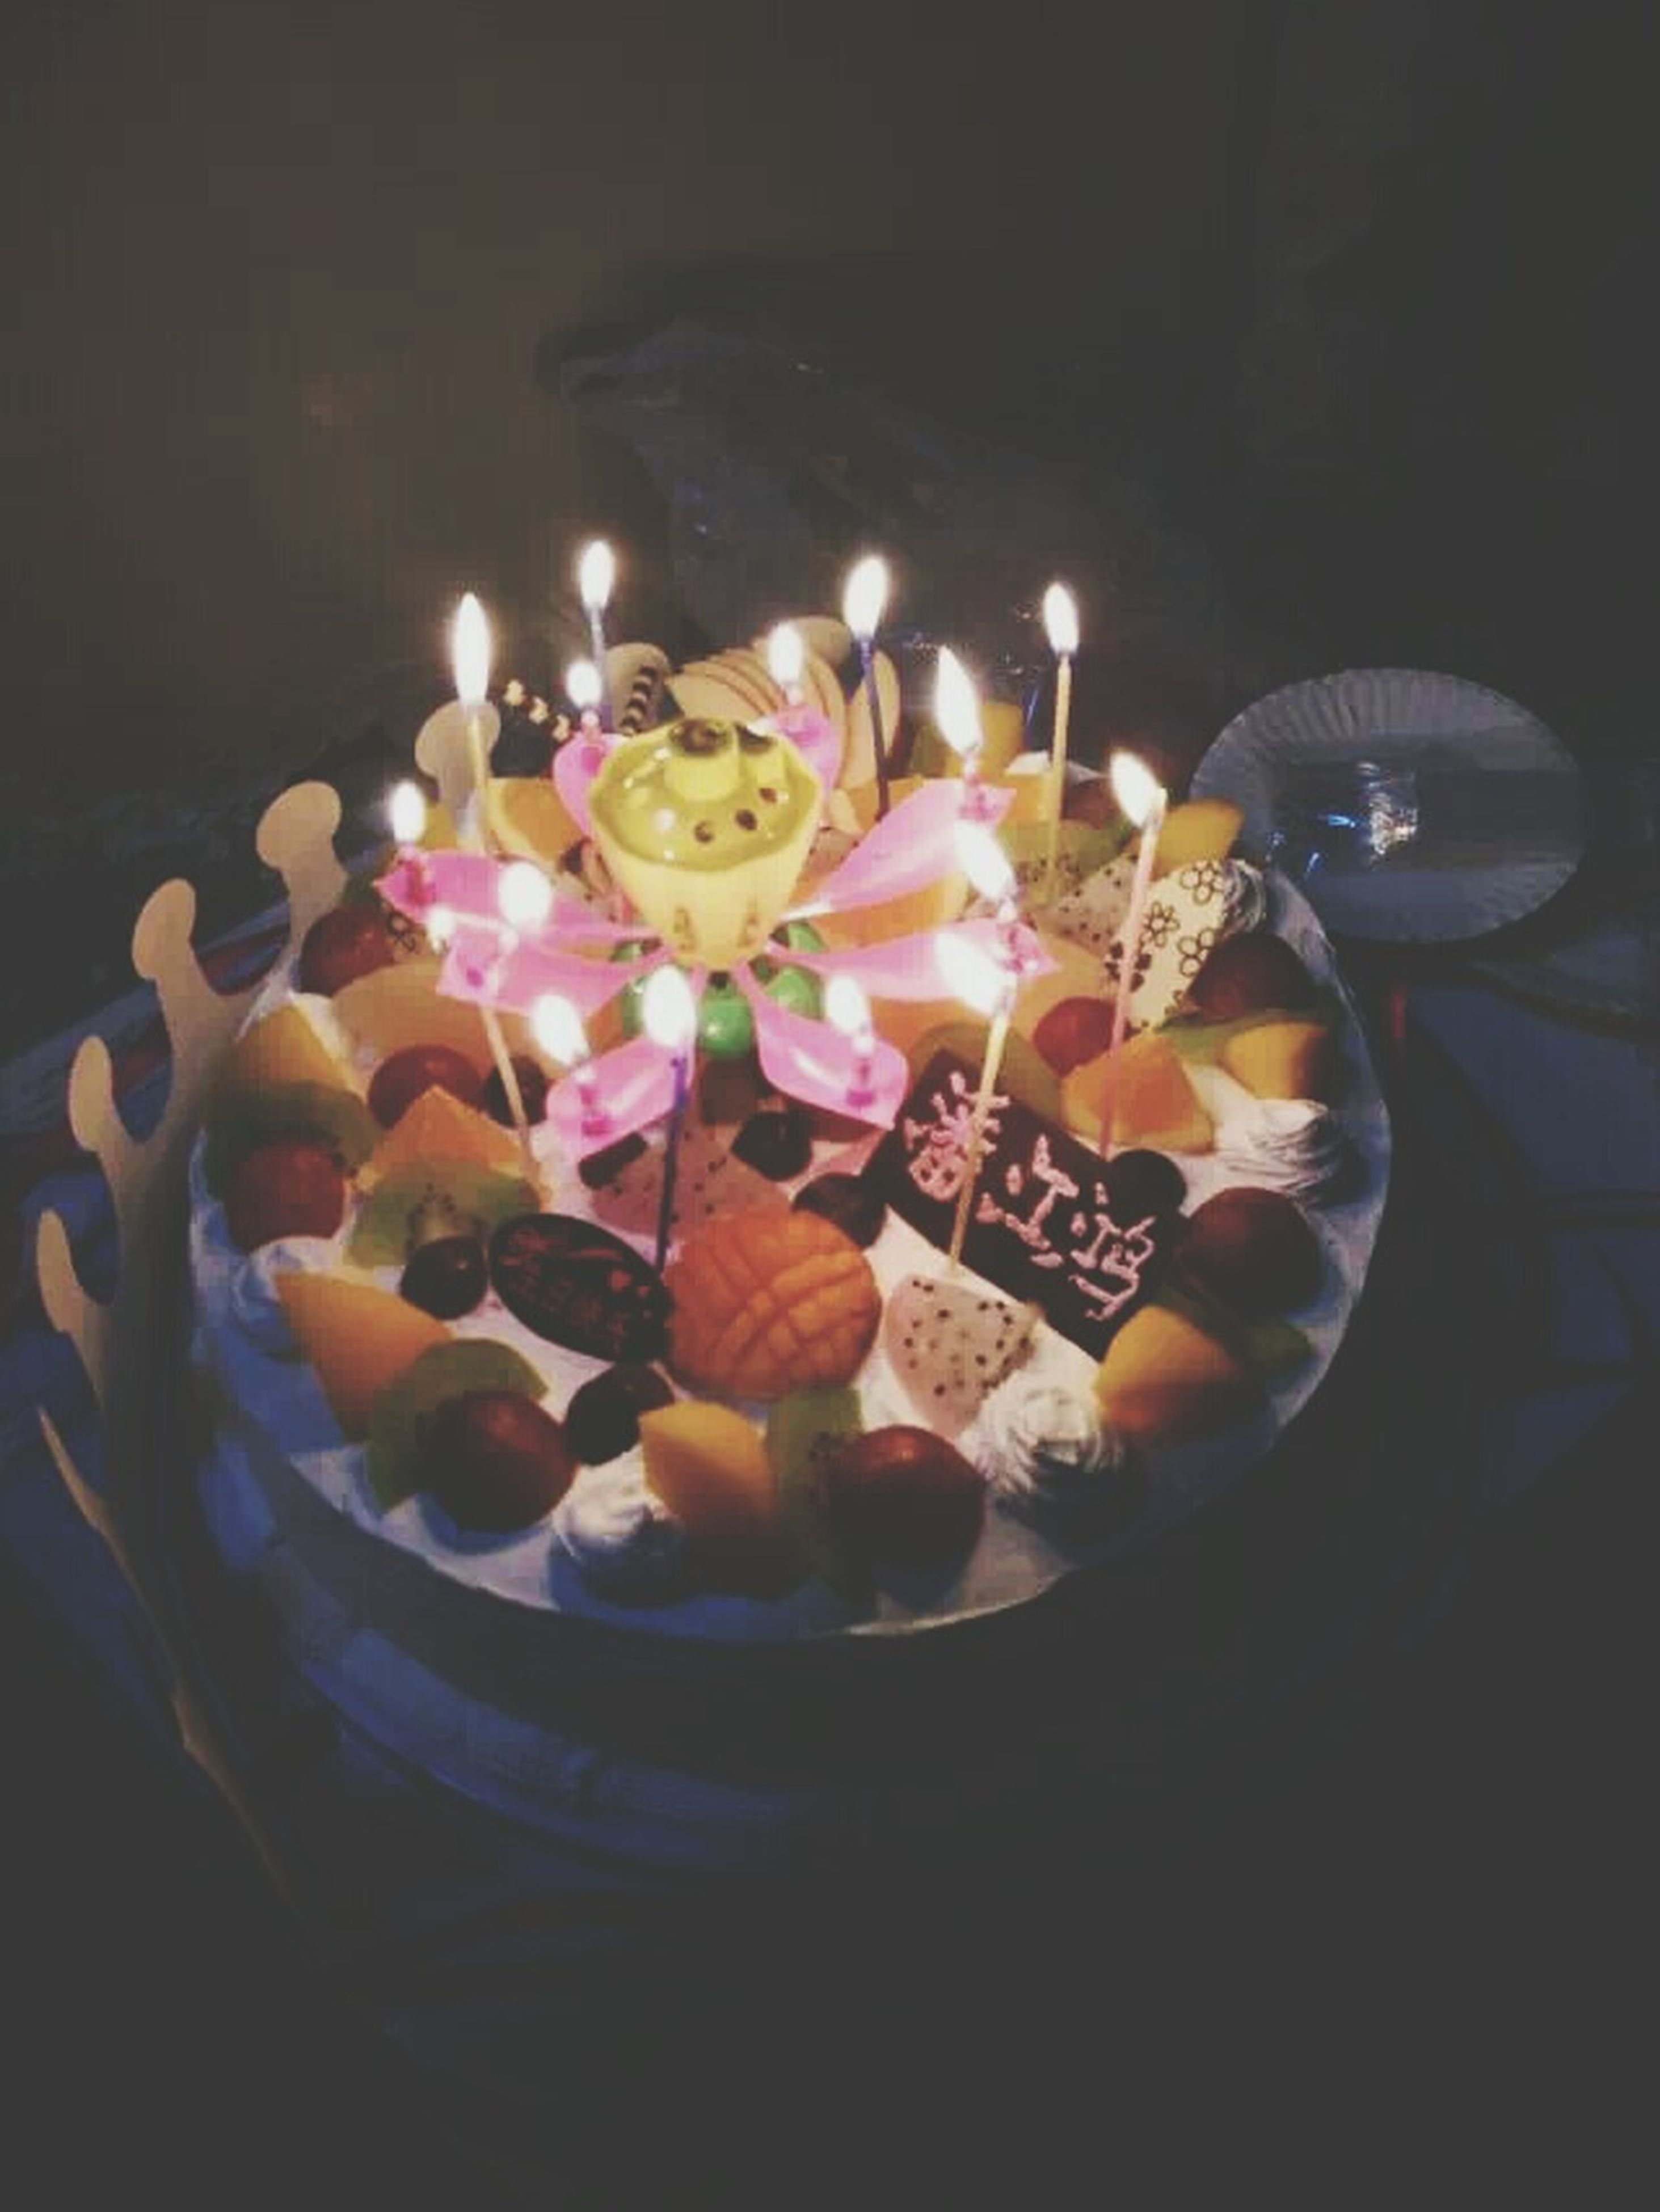 indoors, sweet food, celebration, multi colored, still life, illuminated, table, food and drink, decoration, food, high angle view, night, dessert, indulgence, freshness, candle, no people, close-up, art and craft, creativity